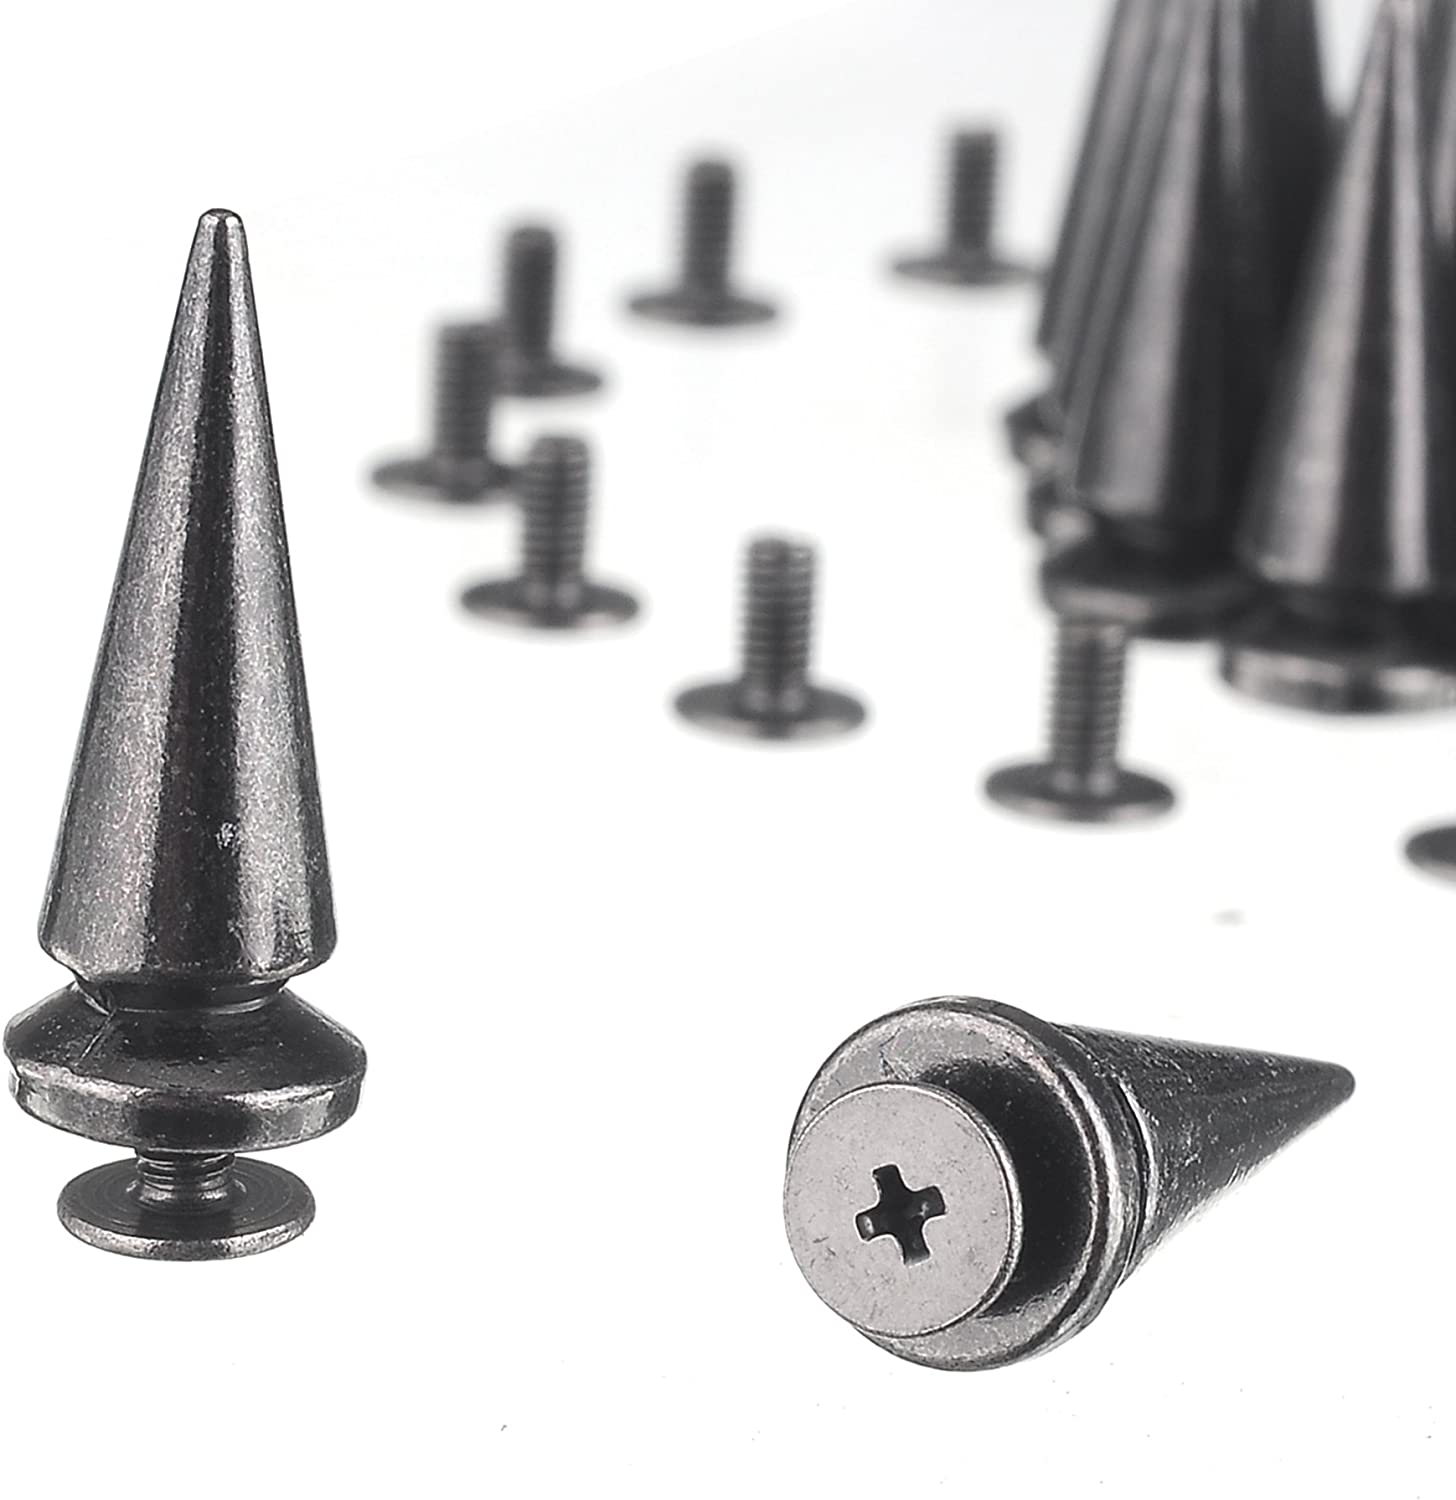 RUBYCA 25MM 10 Sets Large Metal Big Tree Spikes and Studs Metallic Screw-Back for DIY Leather-Craft Bronze Color